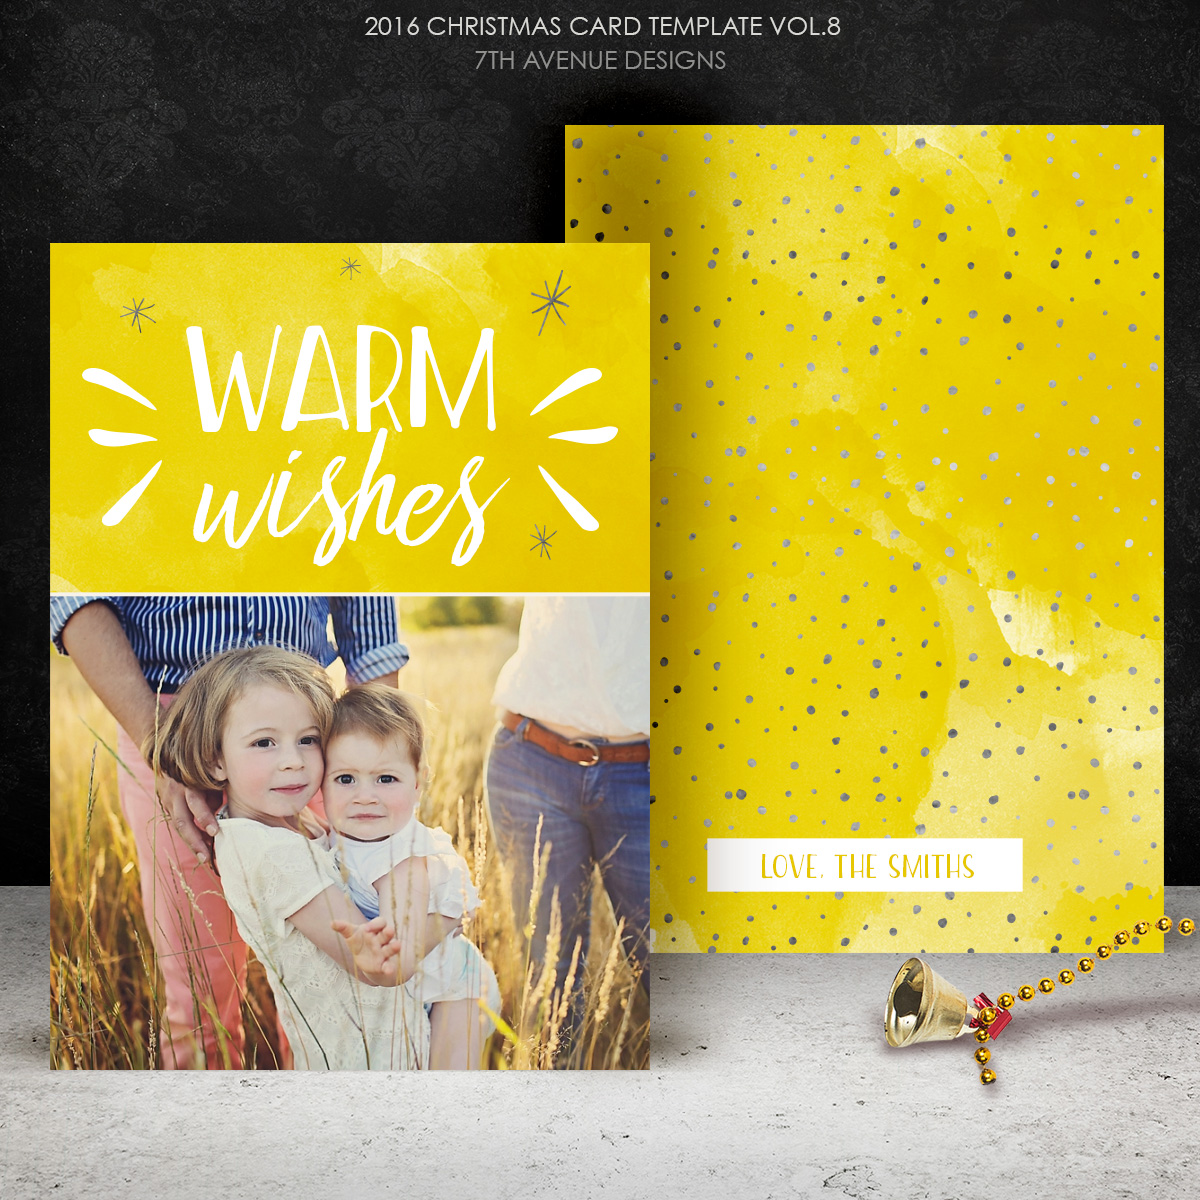 2016 Christmas Card Templates vol.8 -- 7x5 inch card template